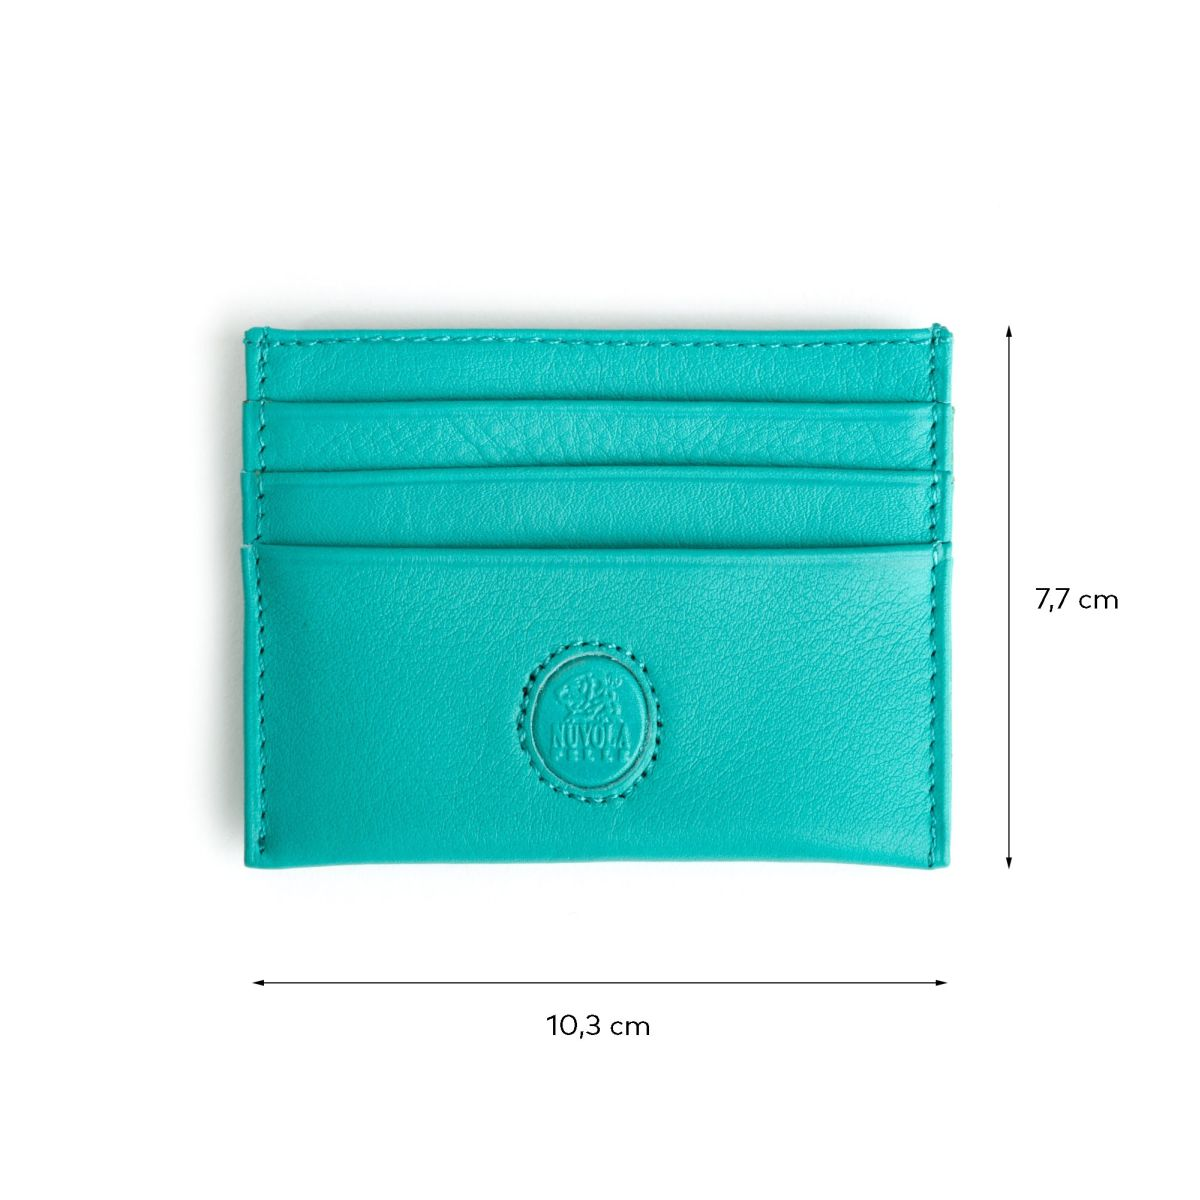 NUVOLA PELLE Minimalist leather credit card wallet - Turquoise